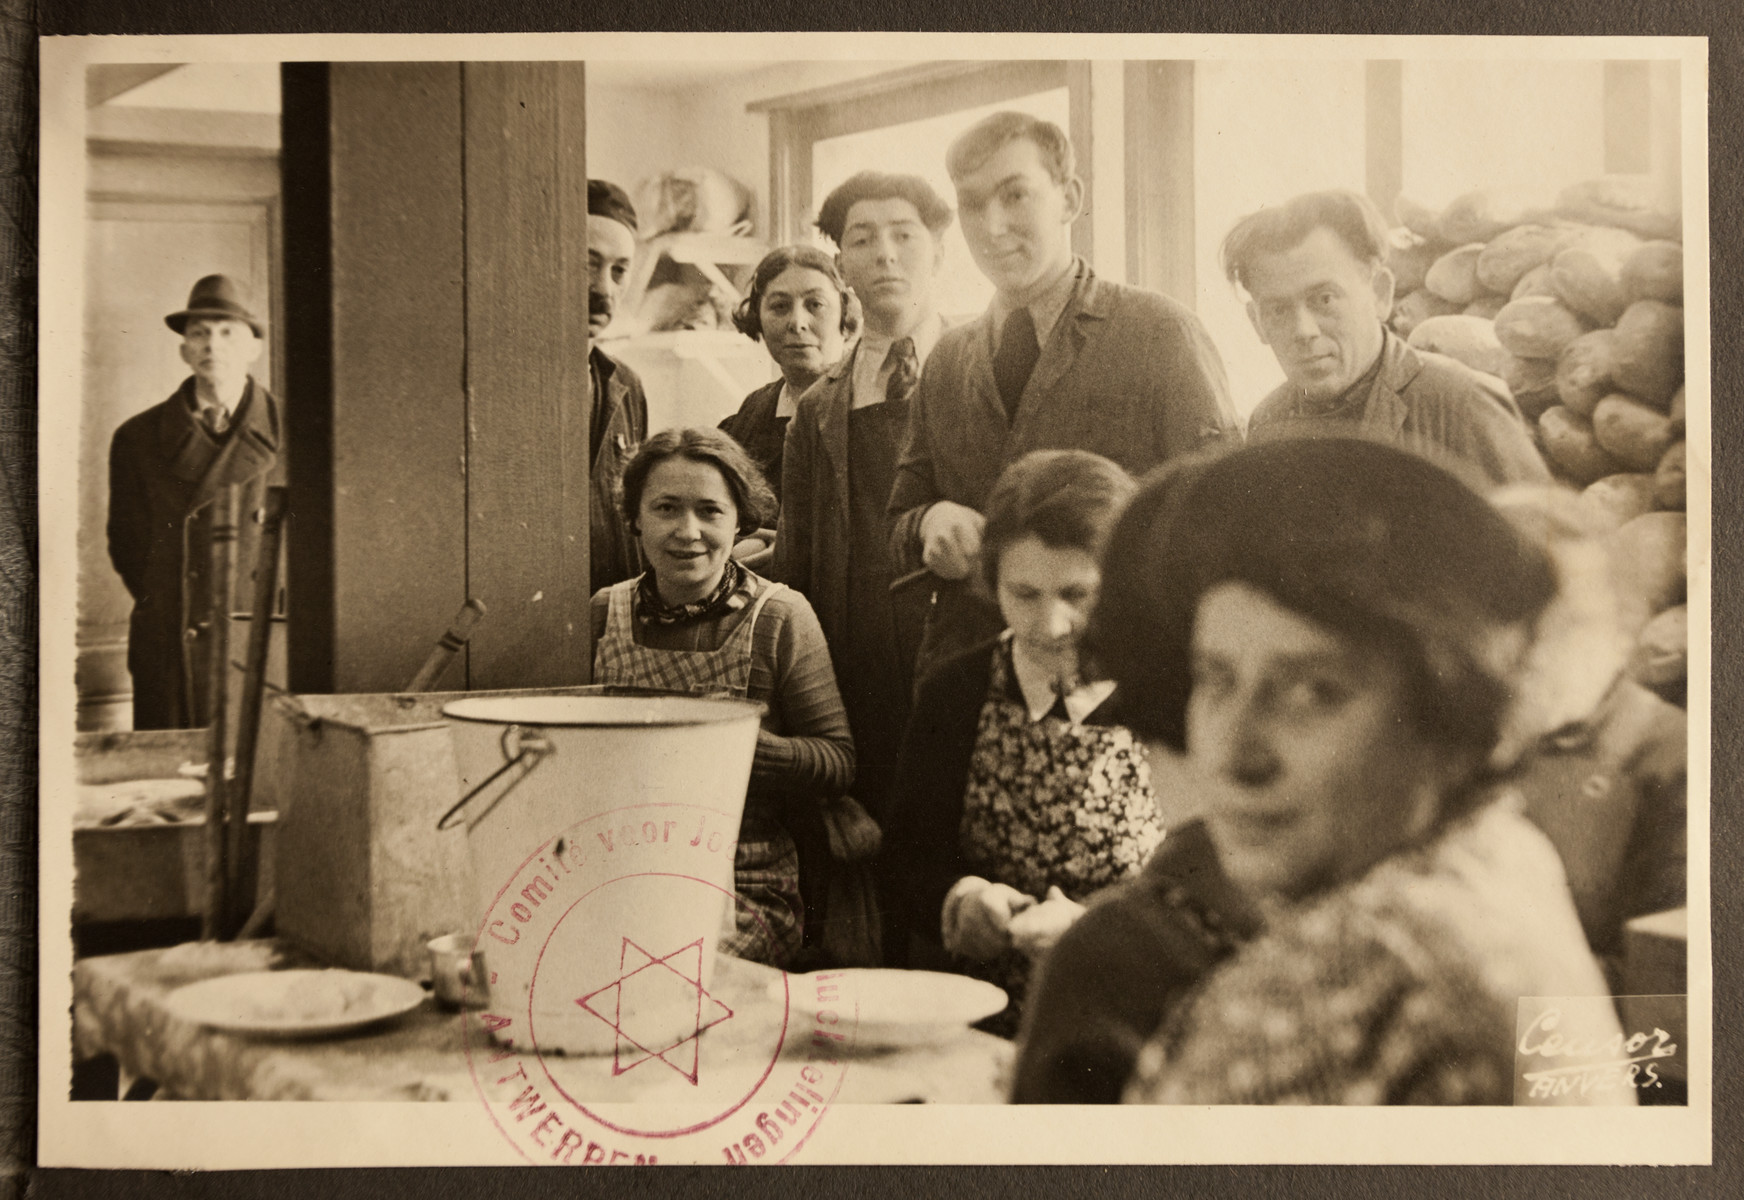 Men and women gather in the kitchen of the Jewish Refugee Aid Committee of Antwerp.